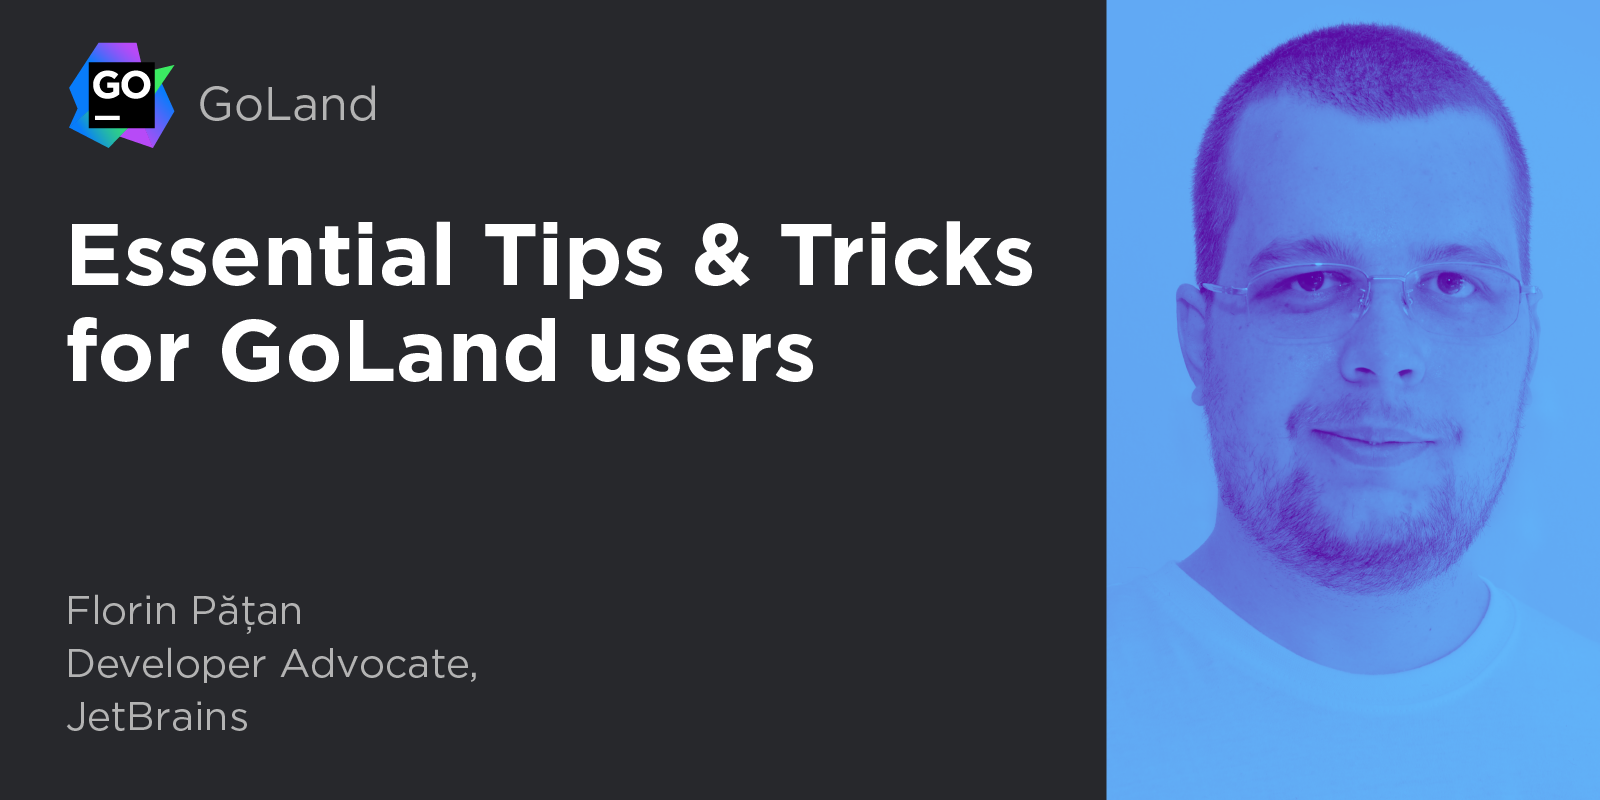 Essential Tips & Tricks for GoLand users